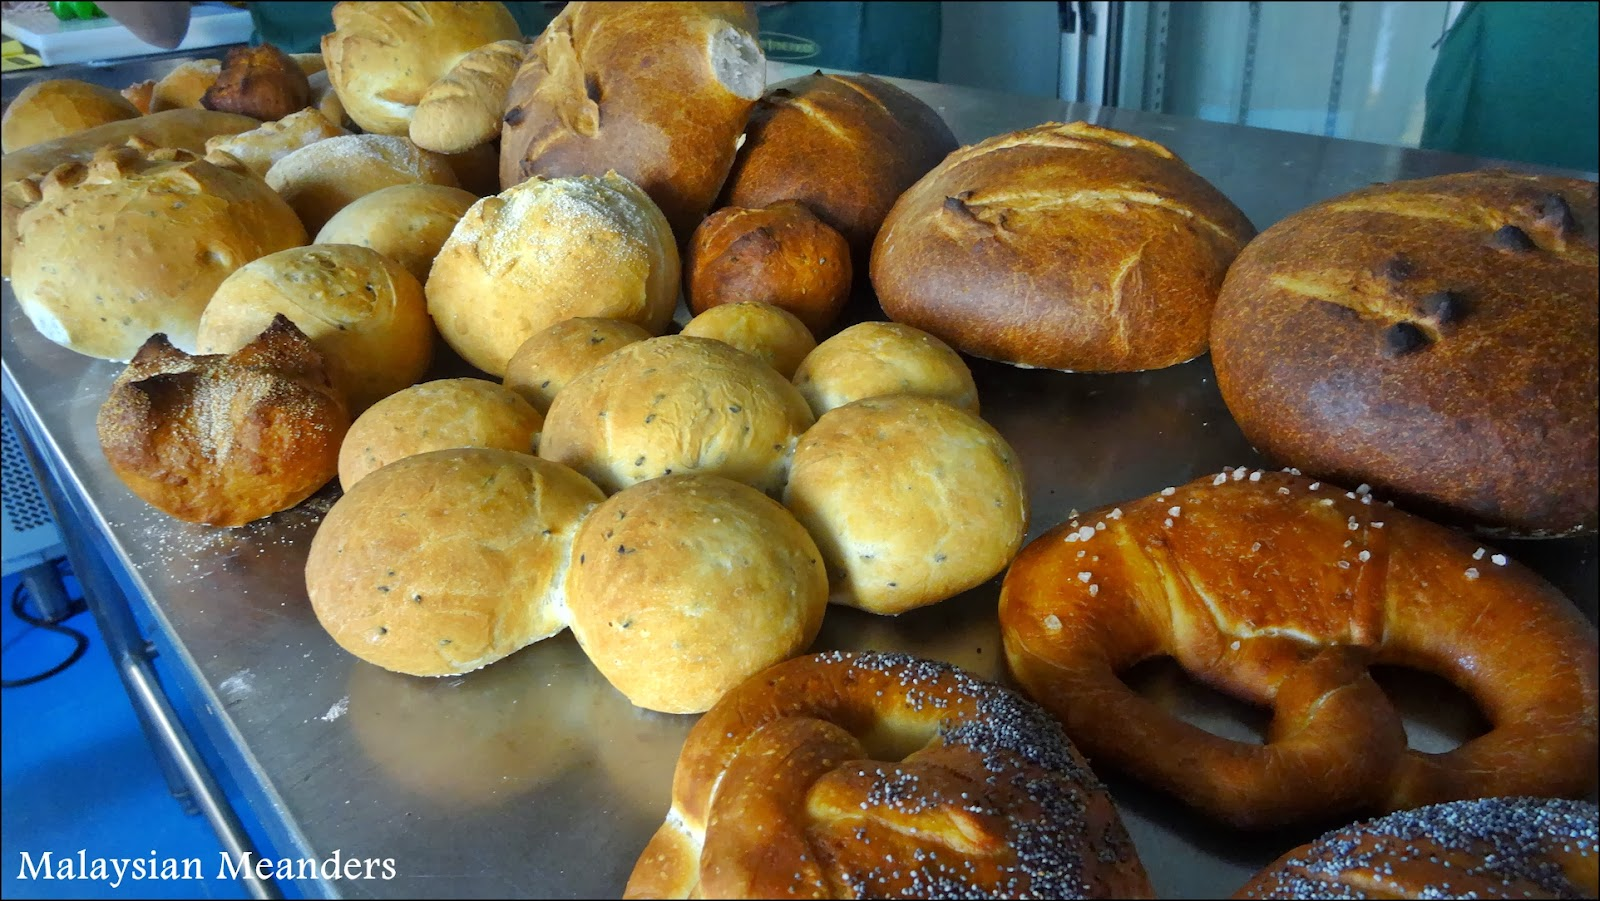 Irrawaddy Fine Foods, bread baking class, Penang